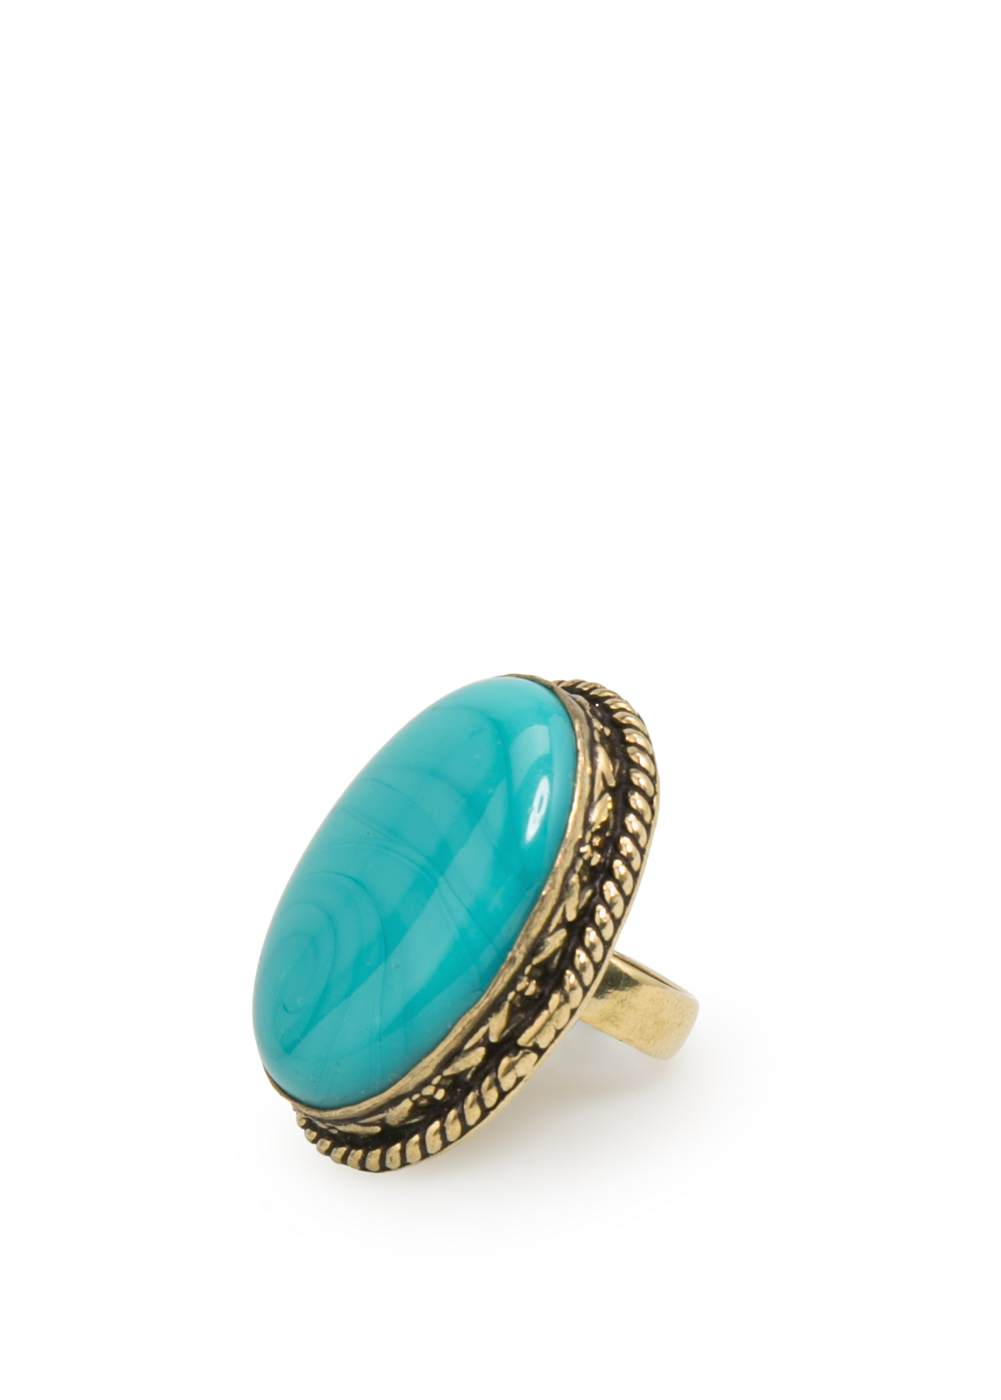 Rounded bead ring